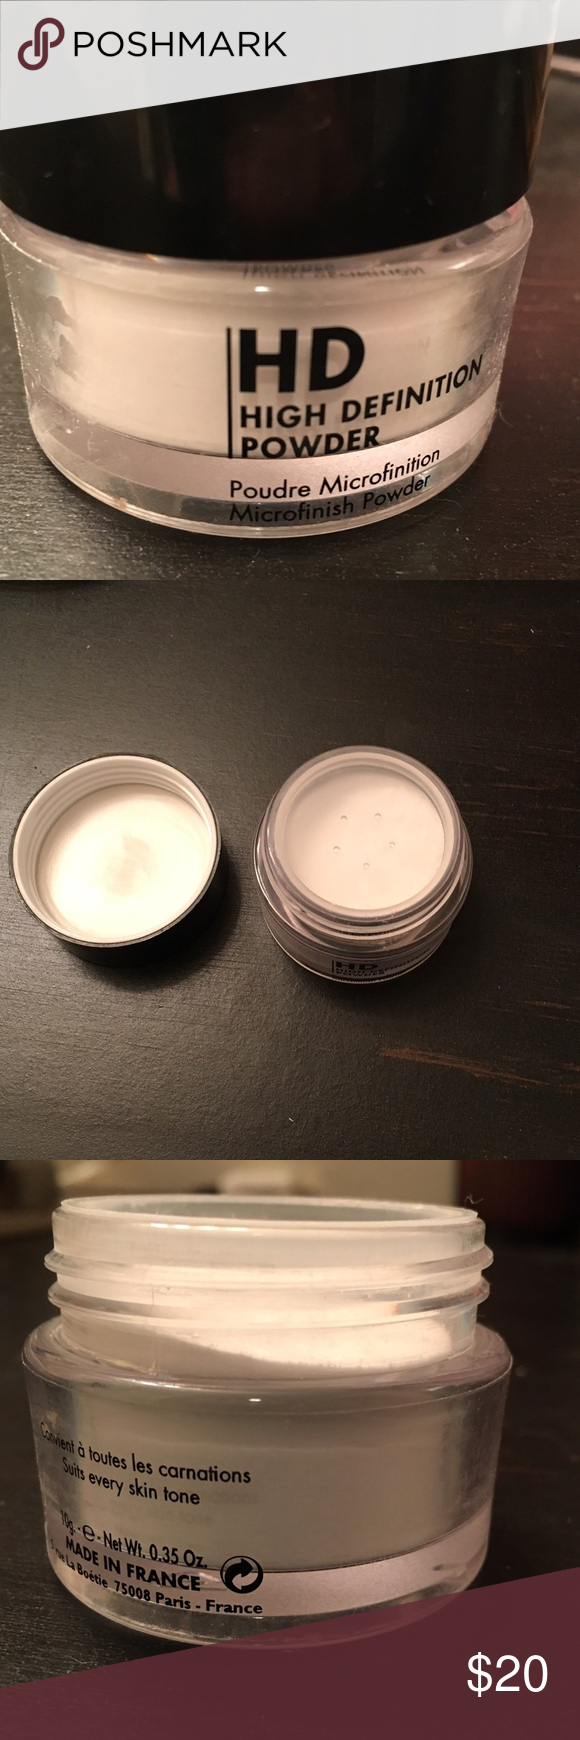 Makeup forever hd setting powder. (Offers